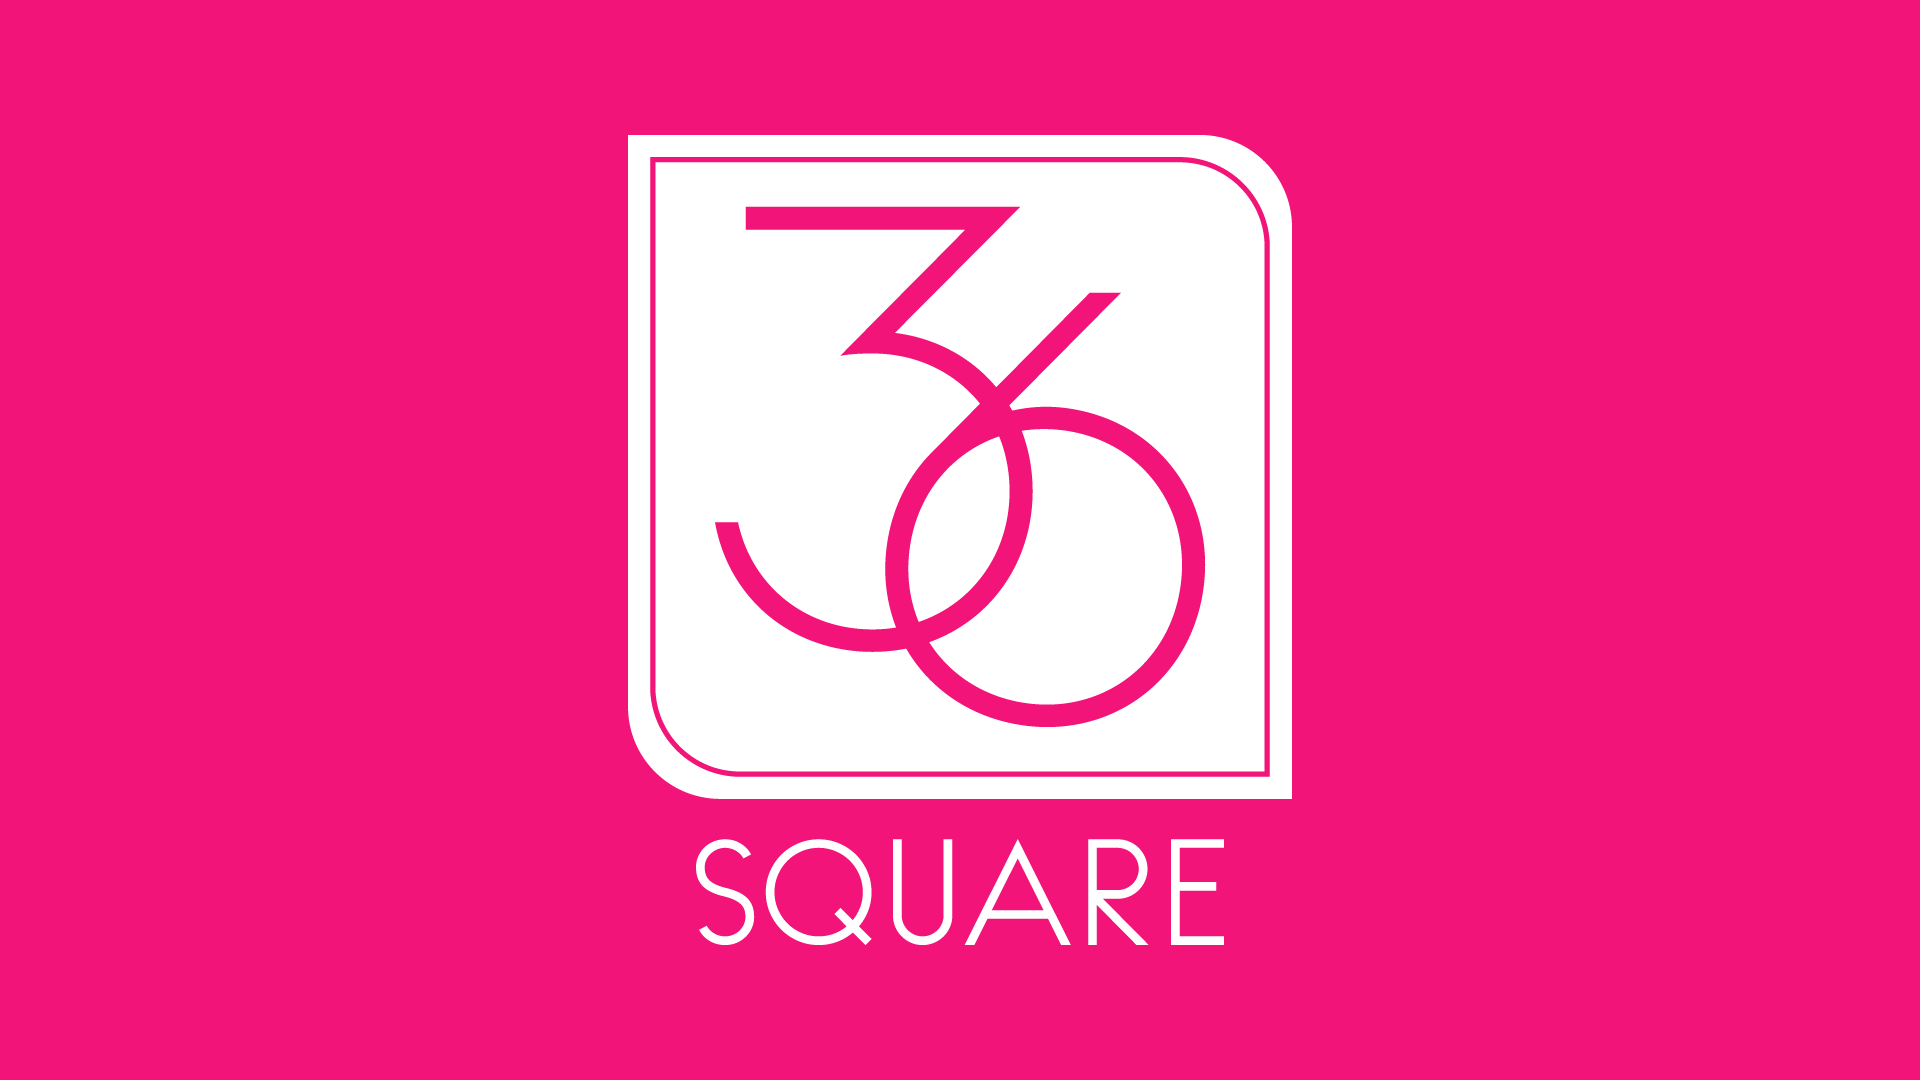 36S-White-Pink-01.png